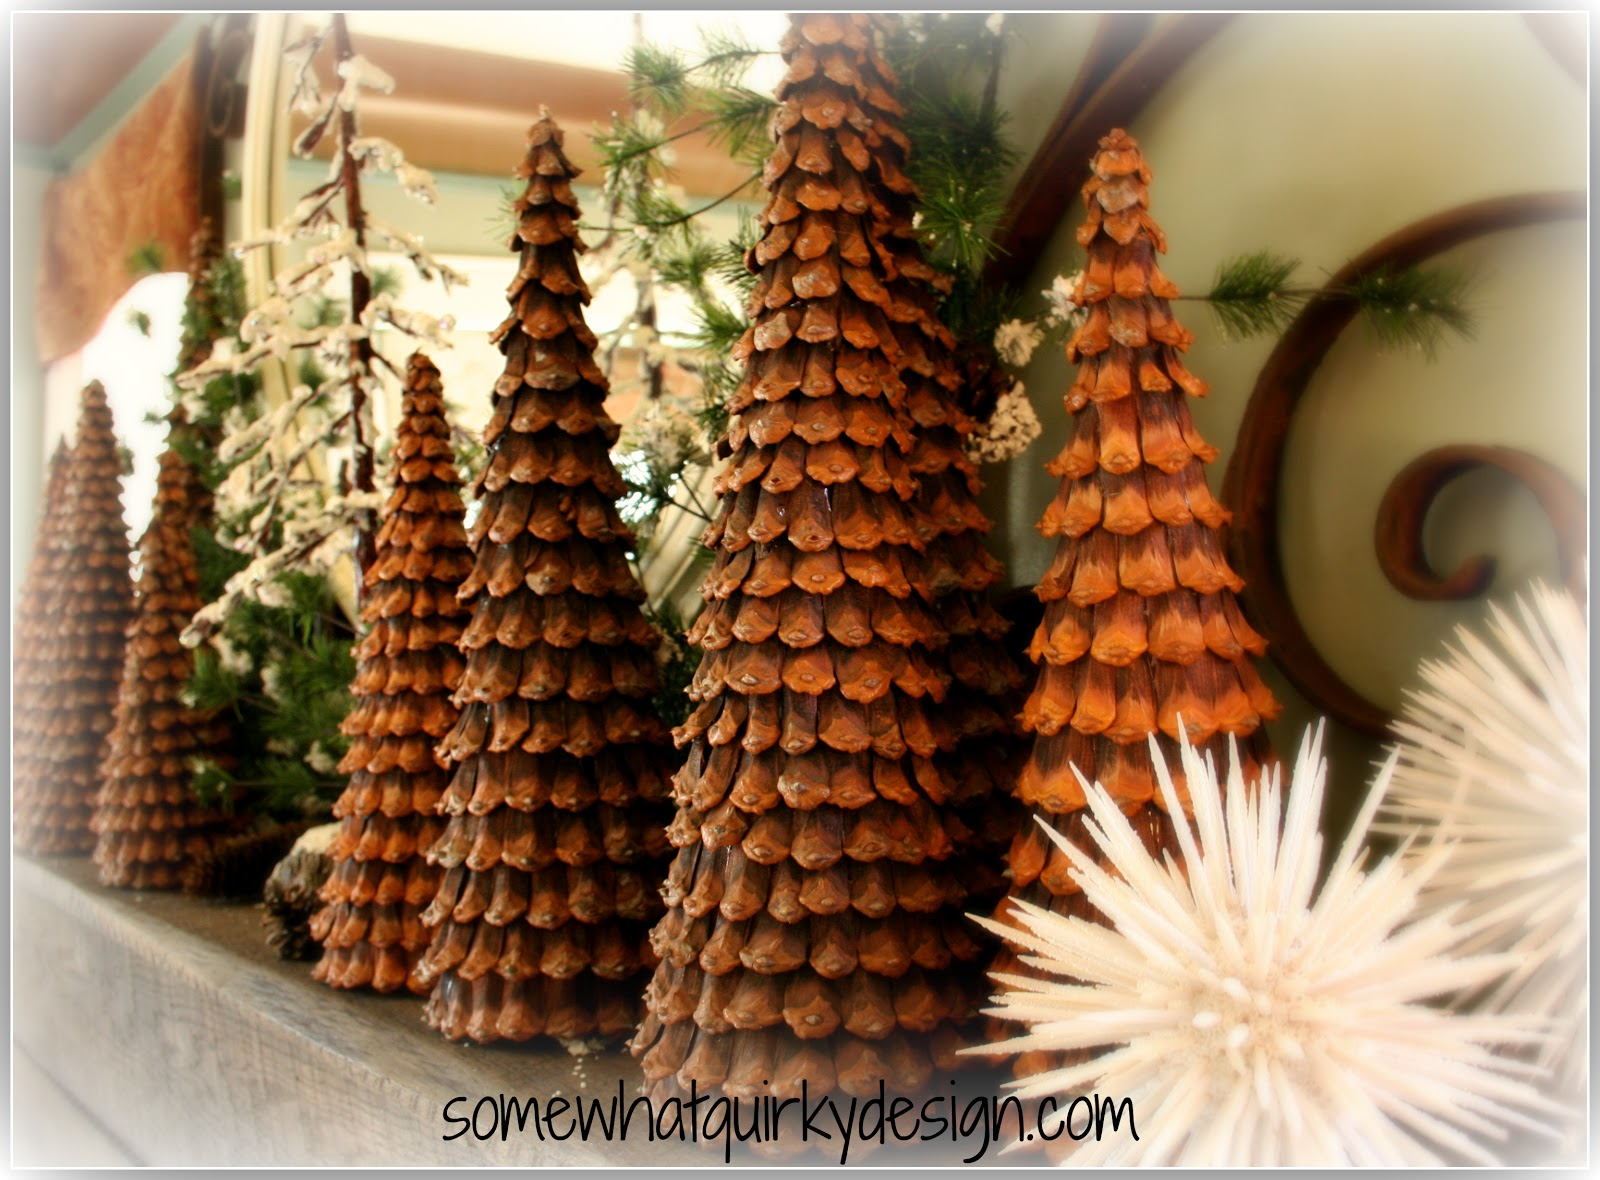 Pine cones for crafts - Pine Cone Crafts For Thanksgiving Pine Cone Crafts For Thanksgiving Pine Cone Crafts For Thanksgiving